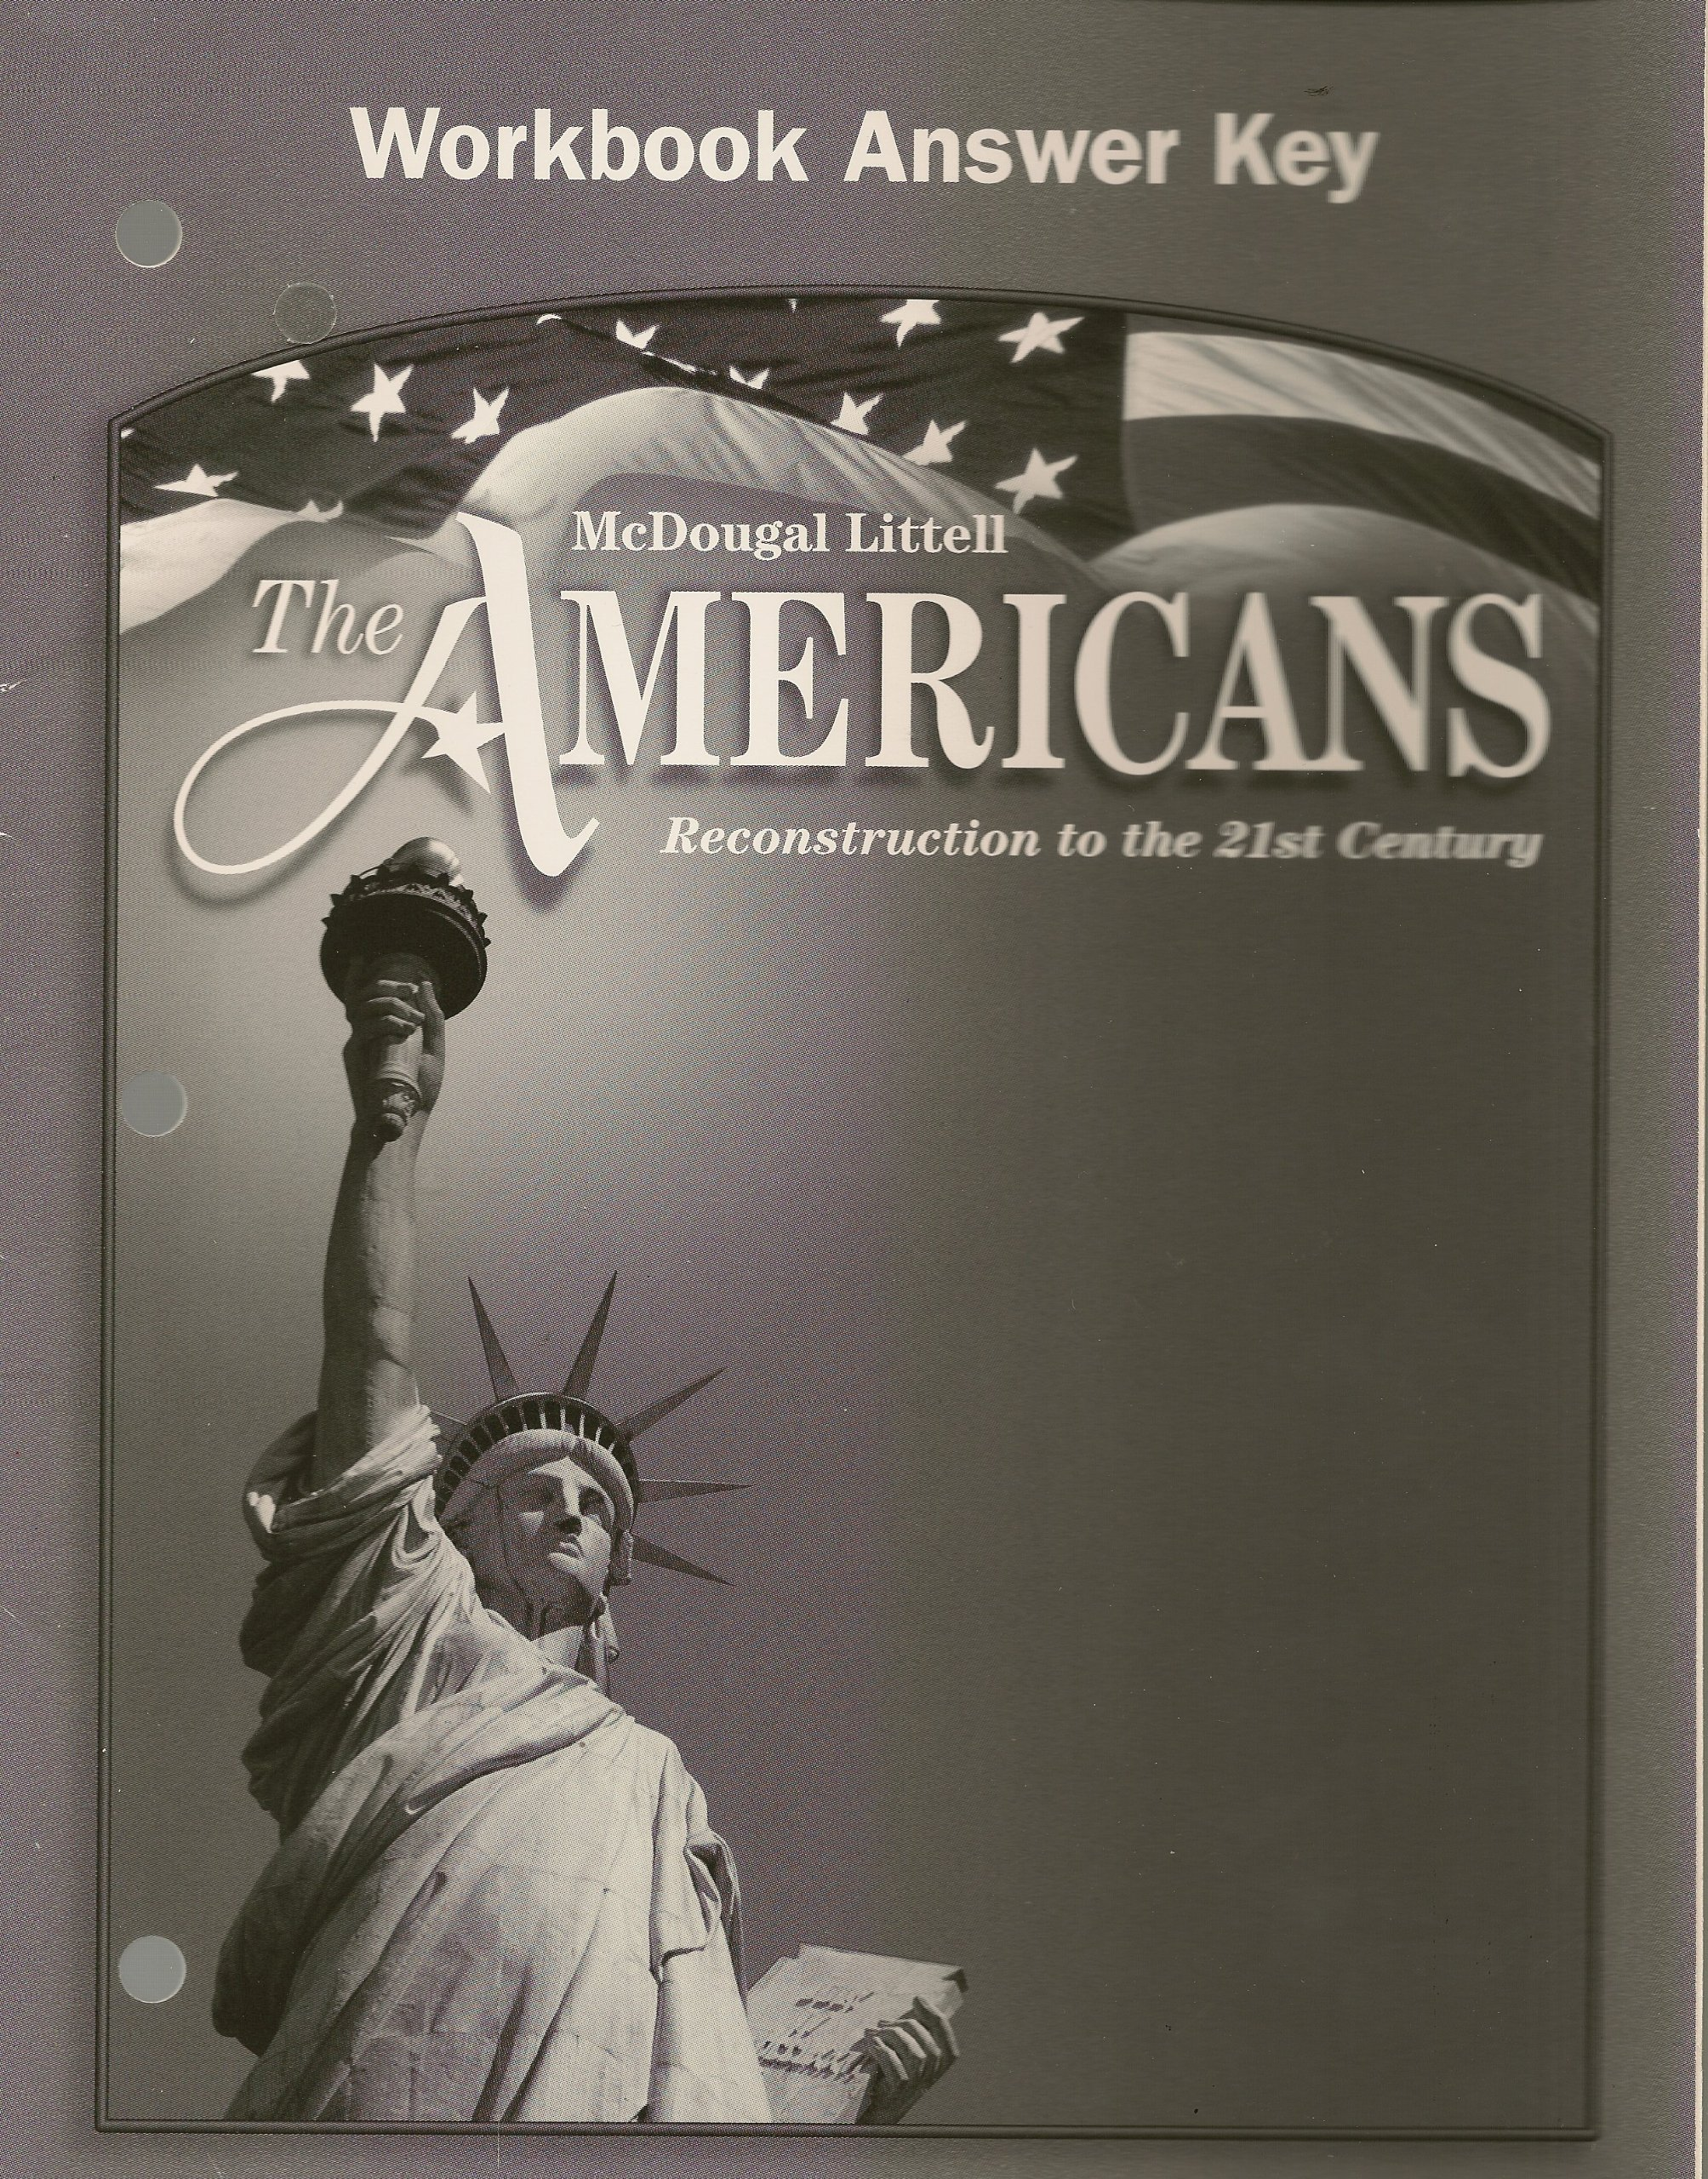 amazon com the americans workbook answer key grades 9 12 rh amazon com McDougal's Nashville McDougal Gym